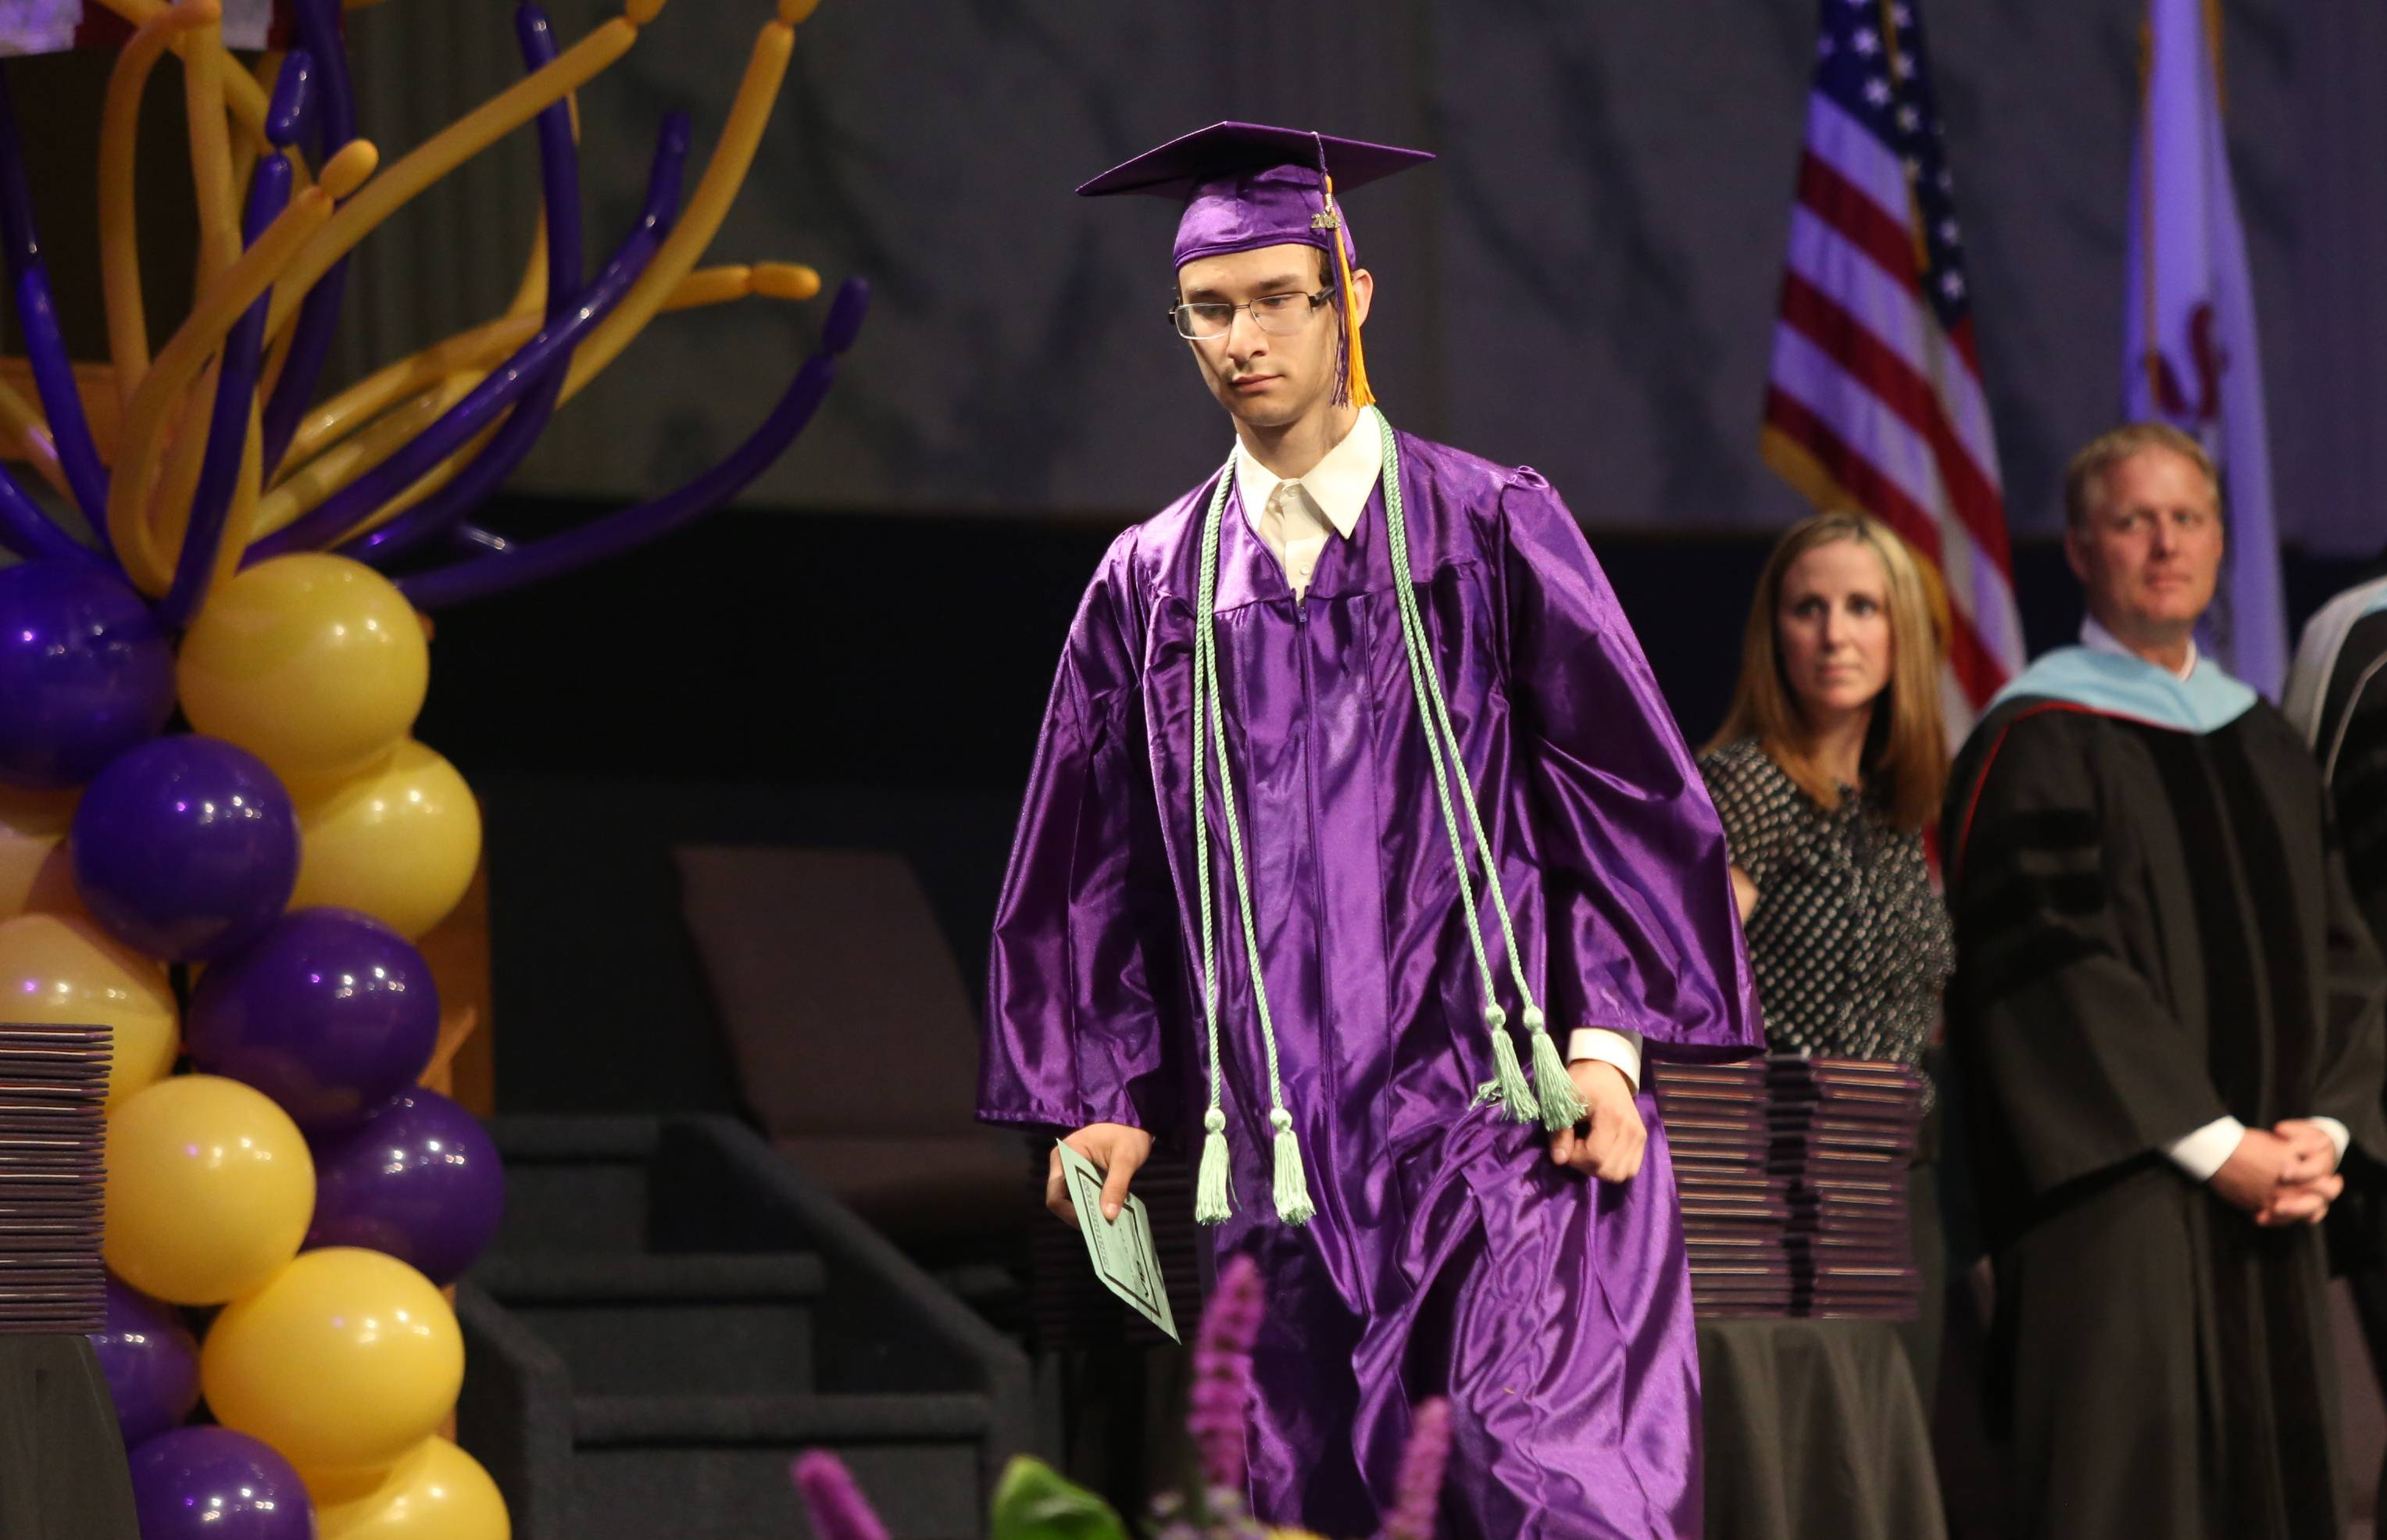 Images from the Wauconda High School graduation on Sunday, May 18 at the Quentin Road Bible Church in Lake Zurich.